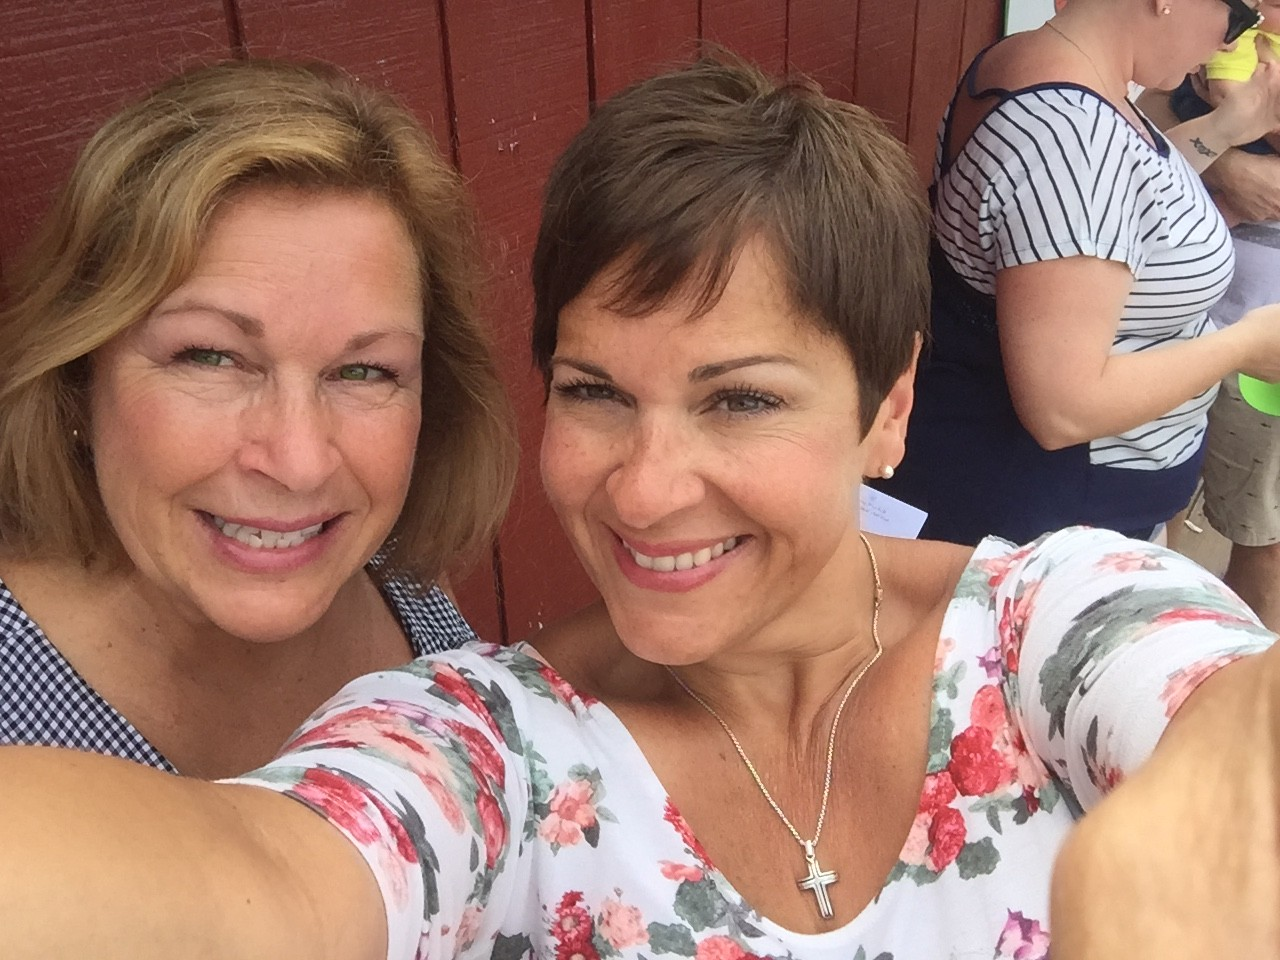 Lou and Sandy snapping a selfie at an outdoor music festival.